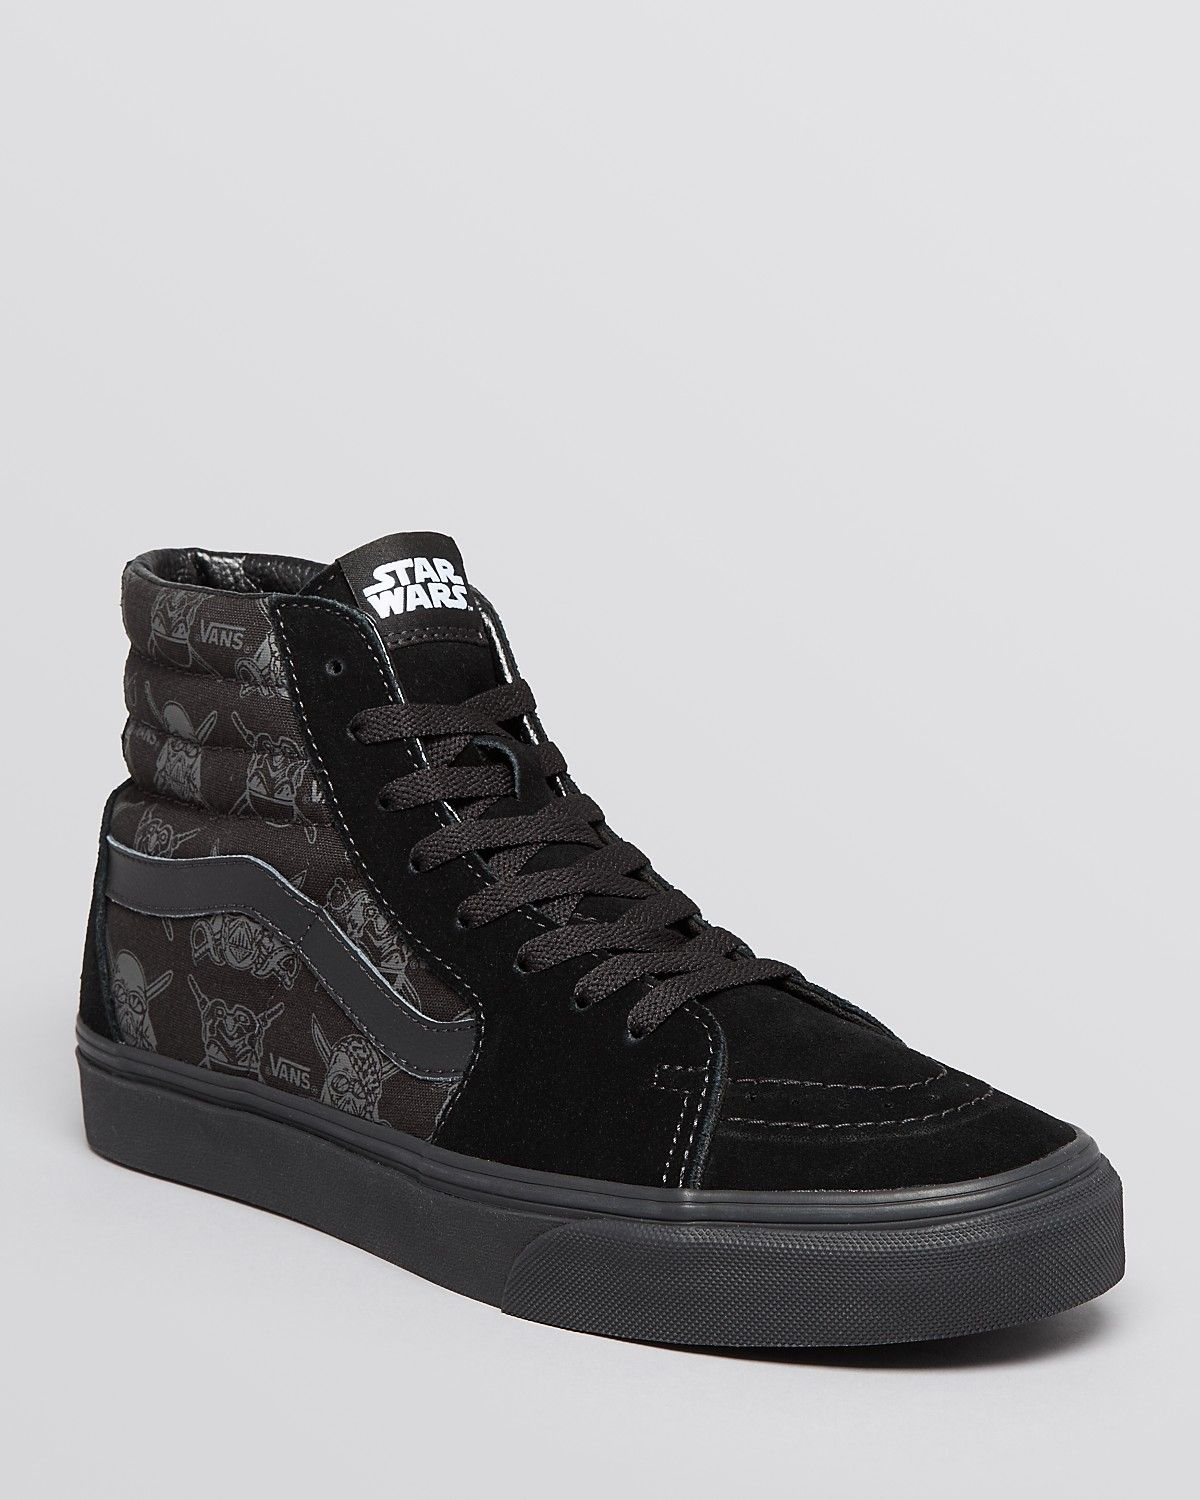 3cffff829 Vans Star Wars SK8 High Top Dark Side Sneakers | Bloomingdale's | Mr ...